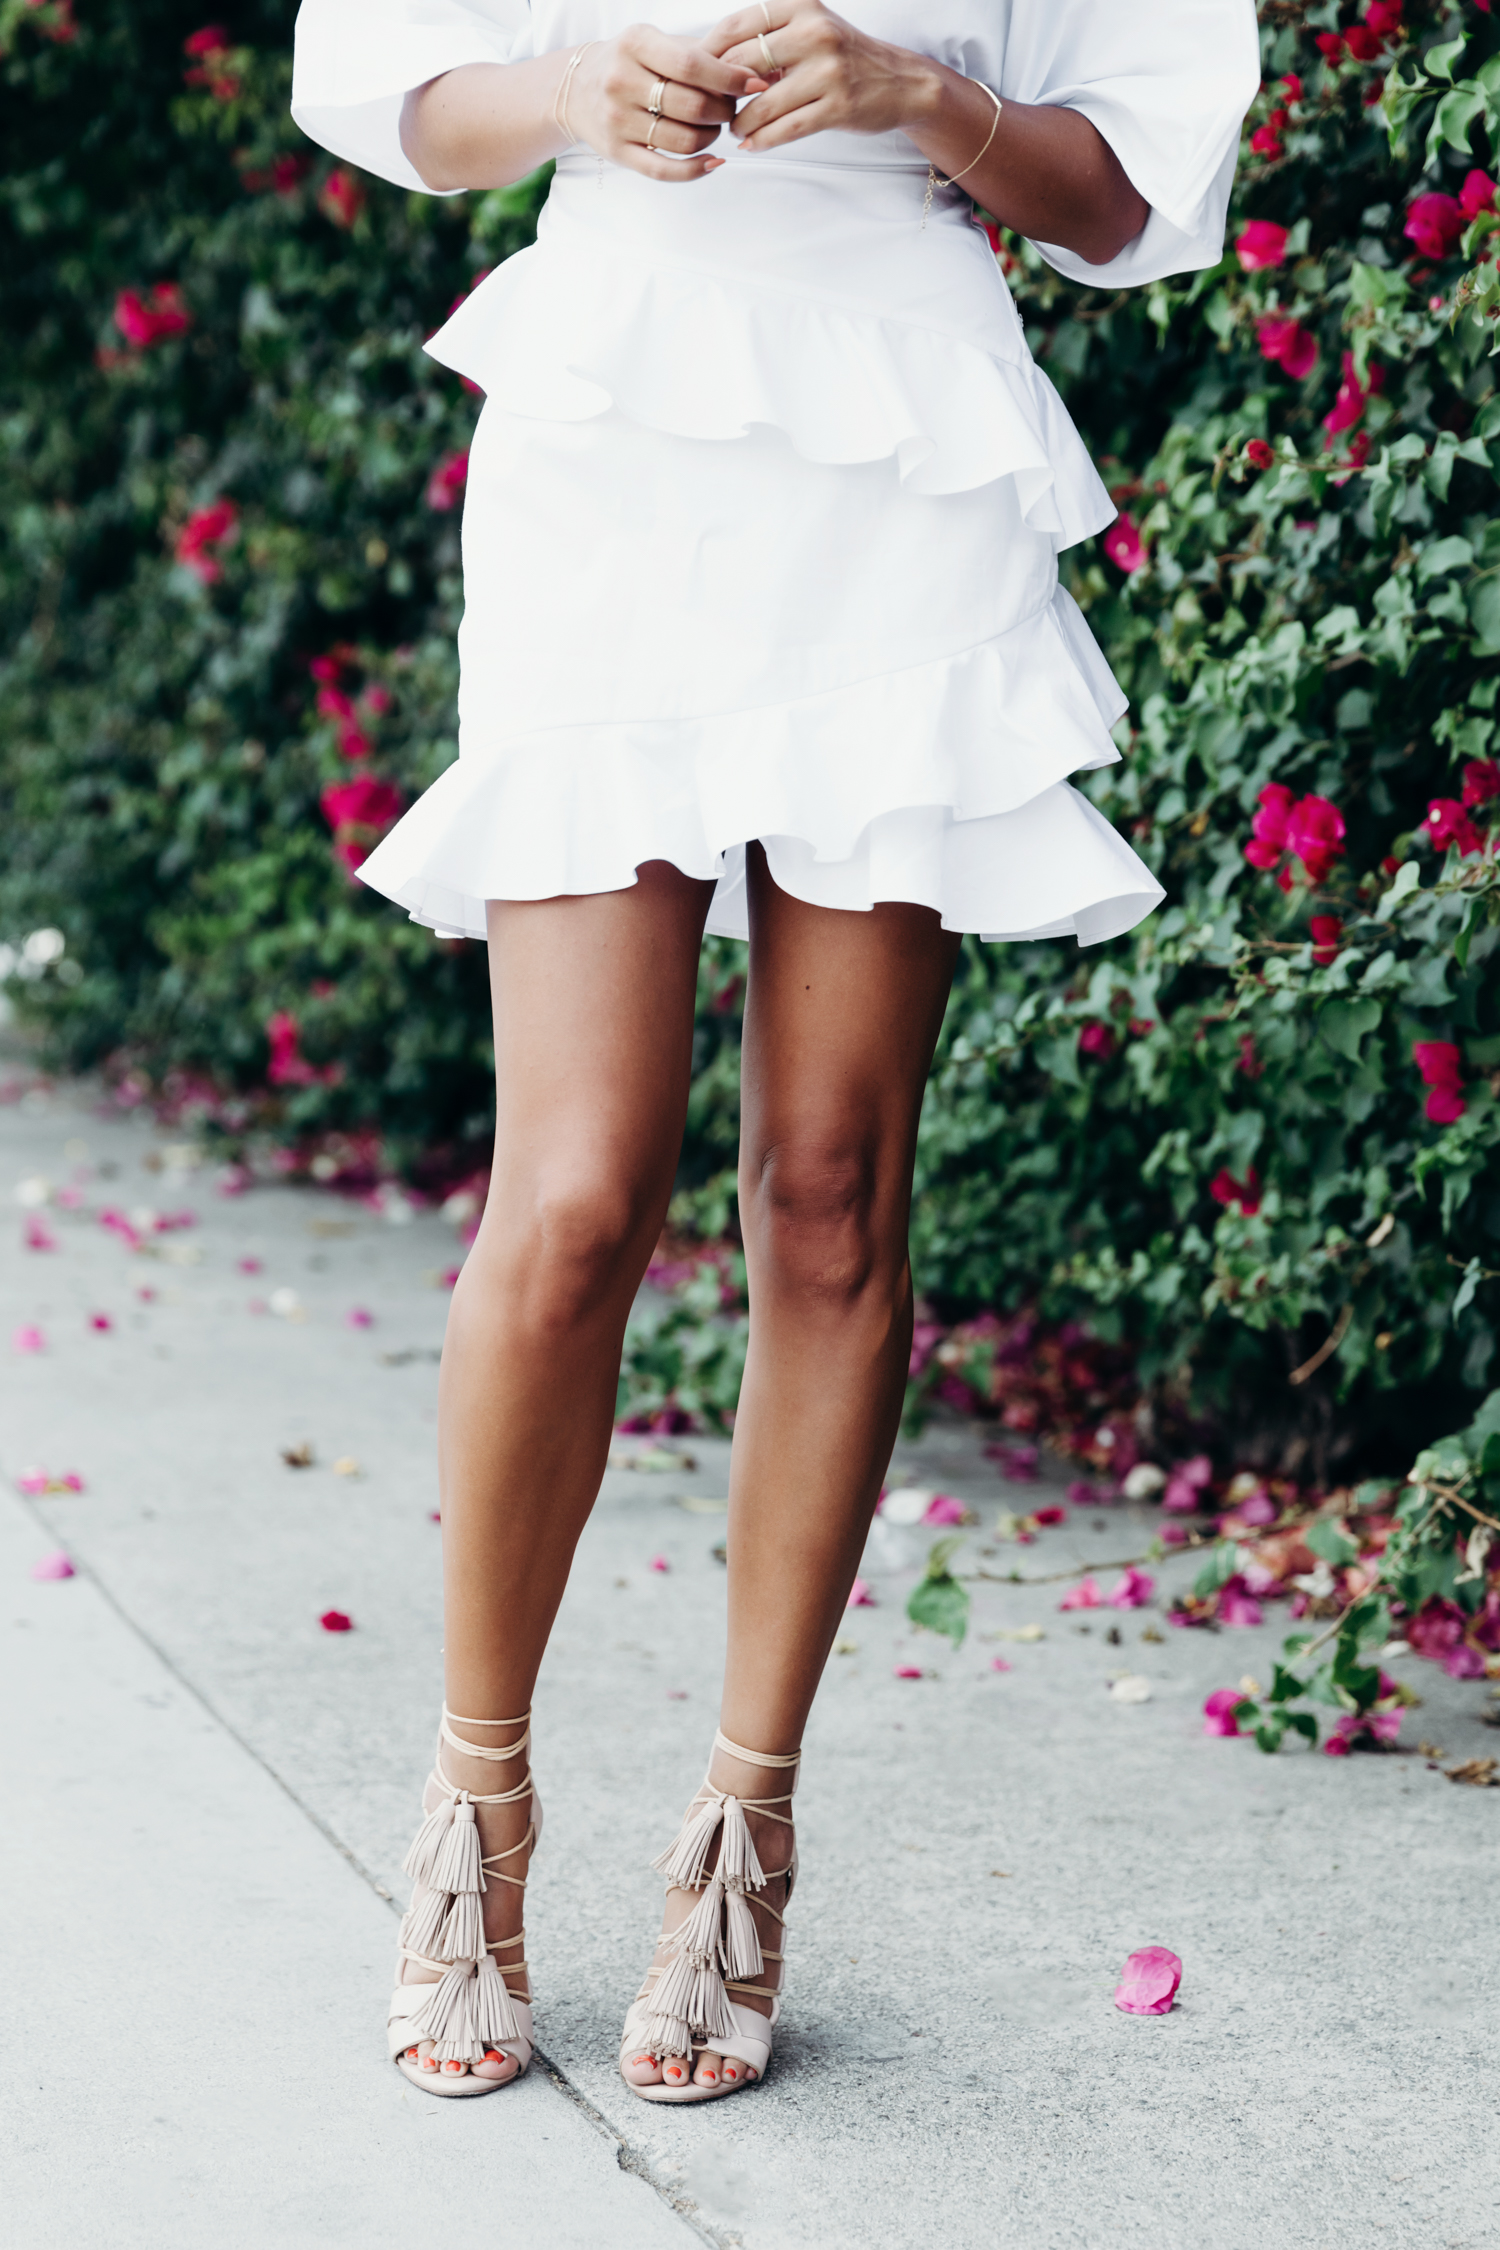 loeffler randall lace up sandals, fame and partners dress